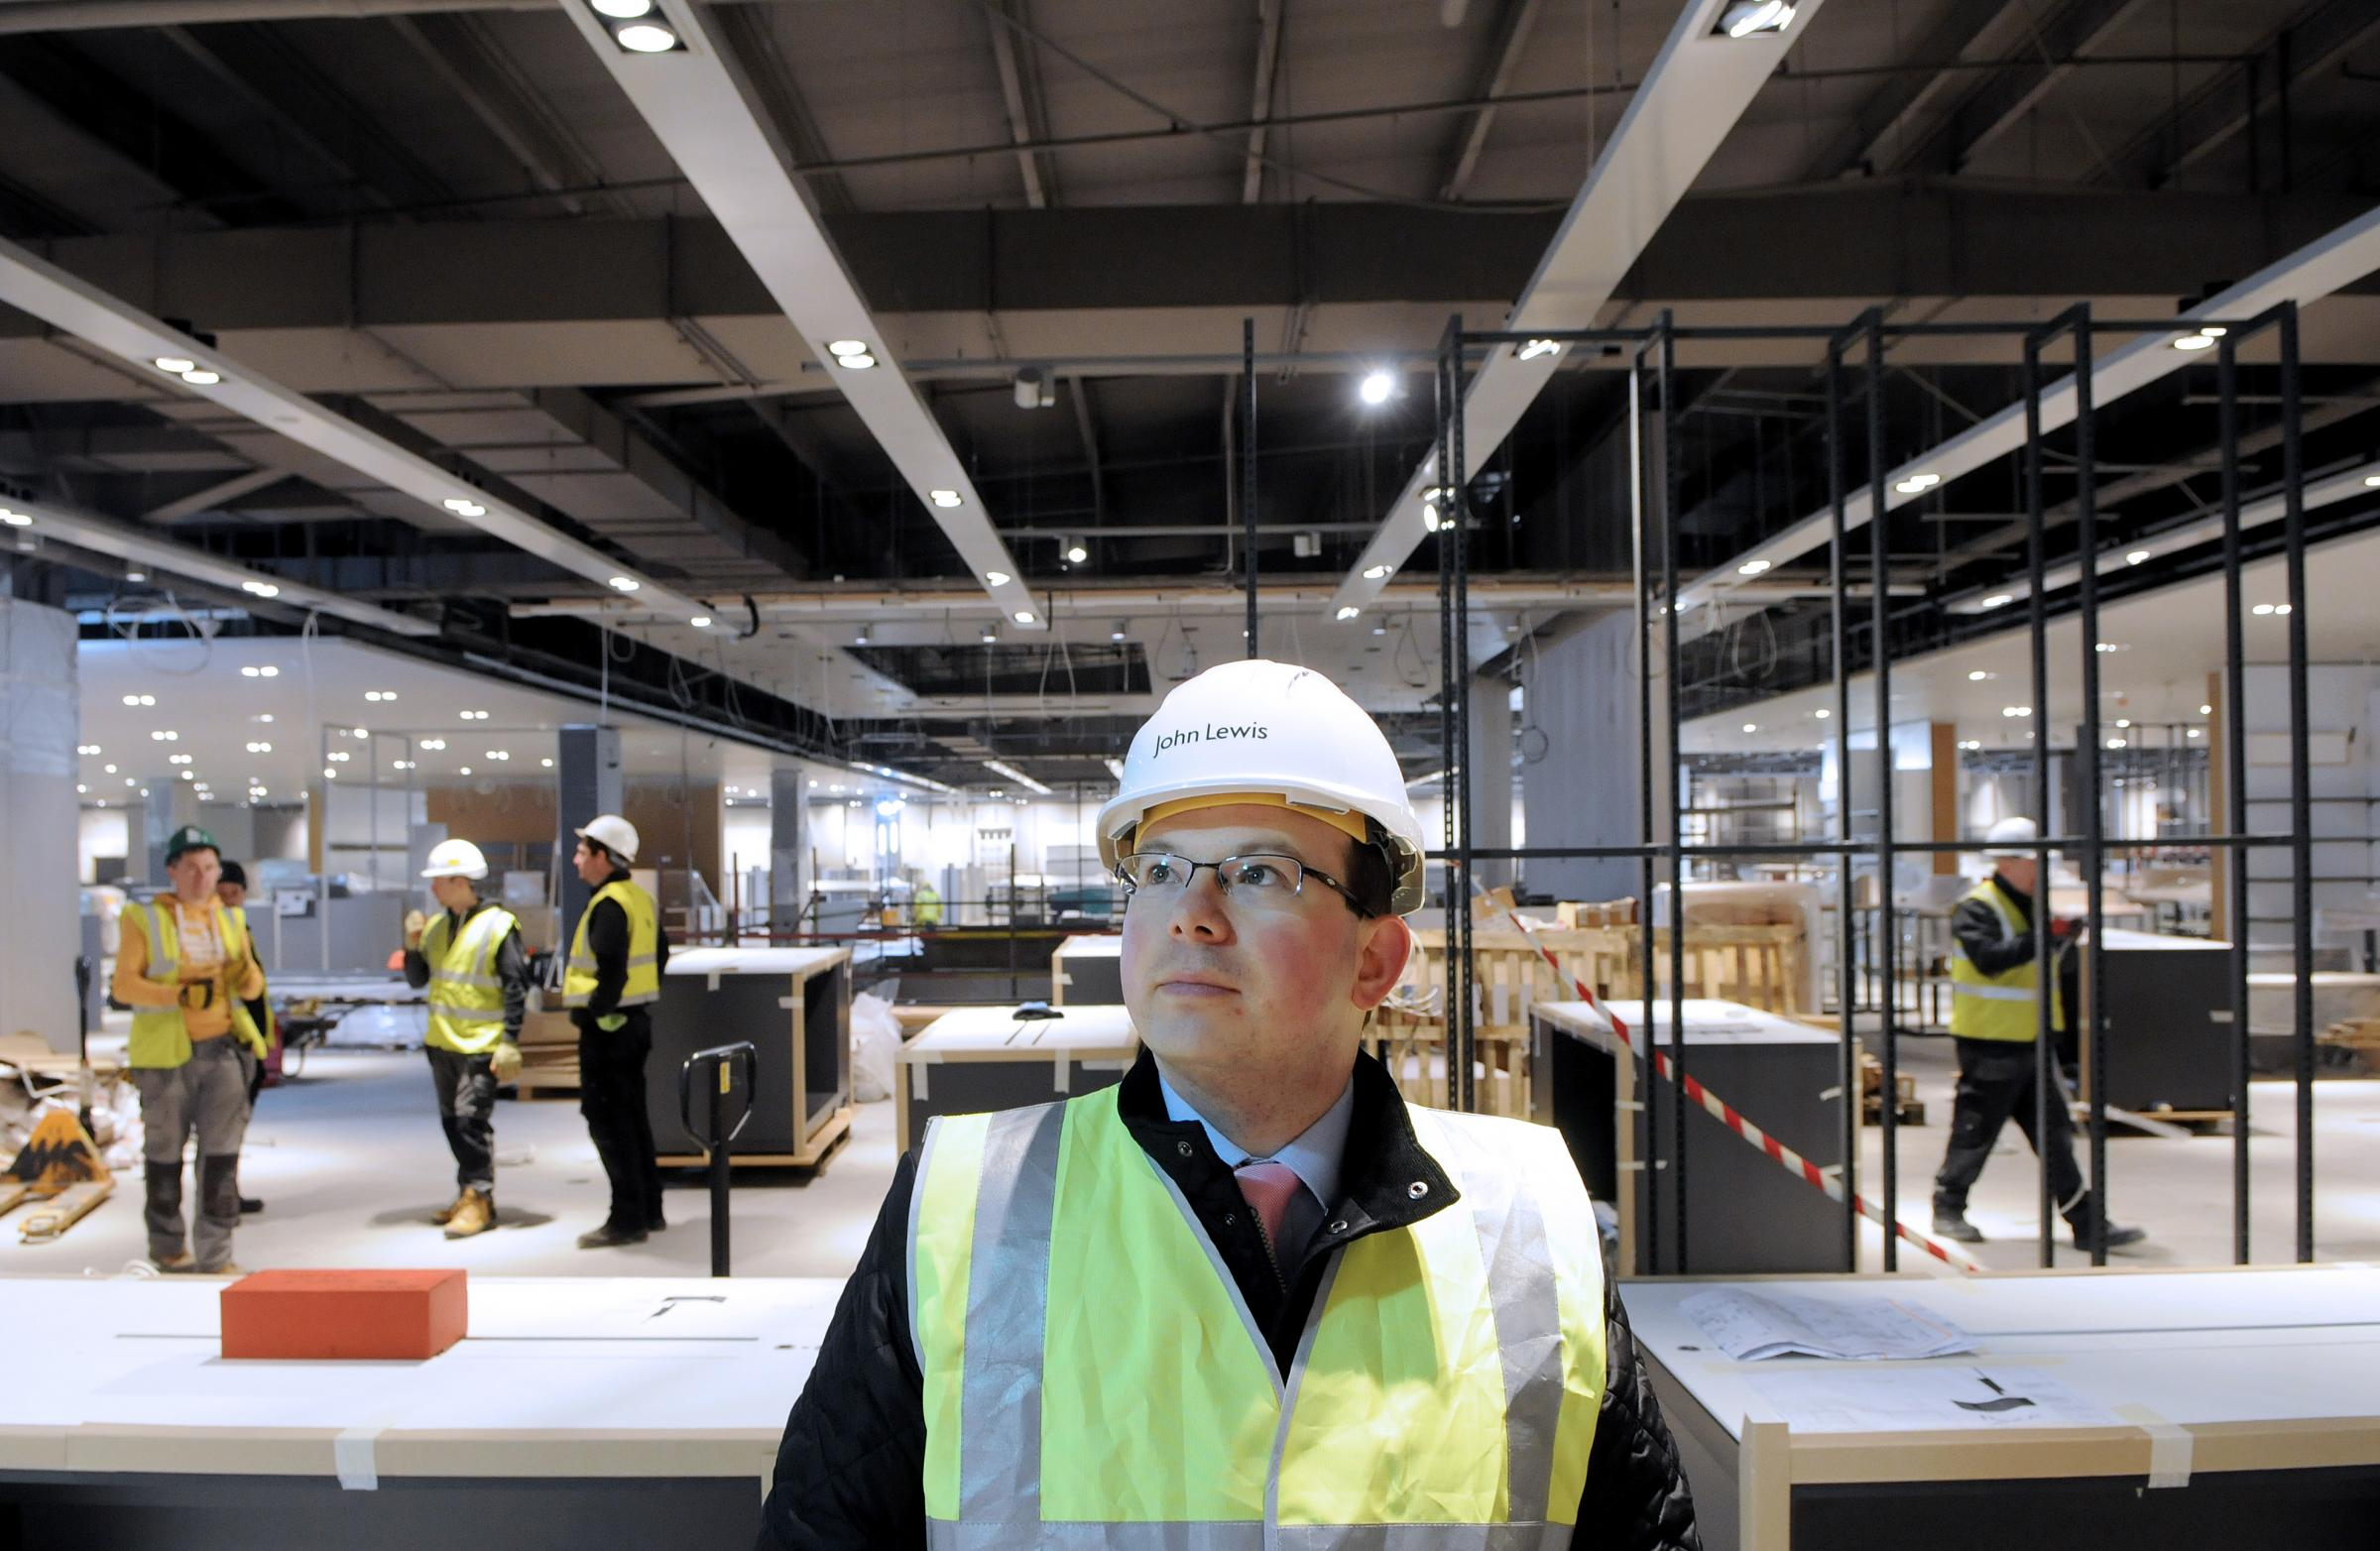 First look at John Lewis store - updated